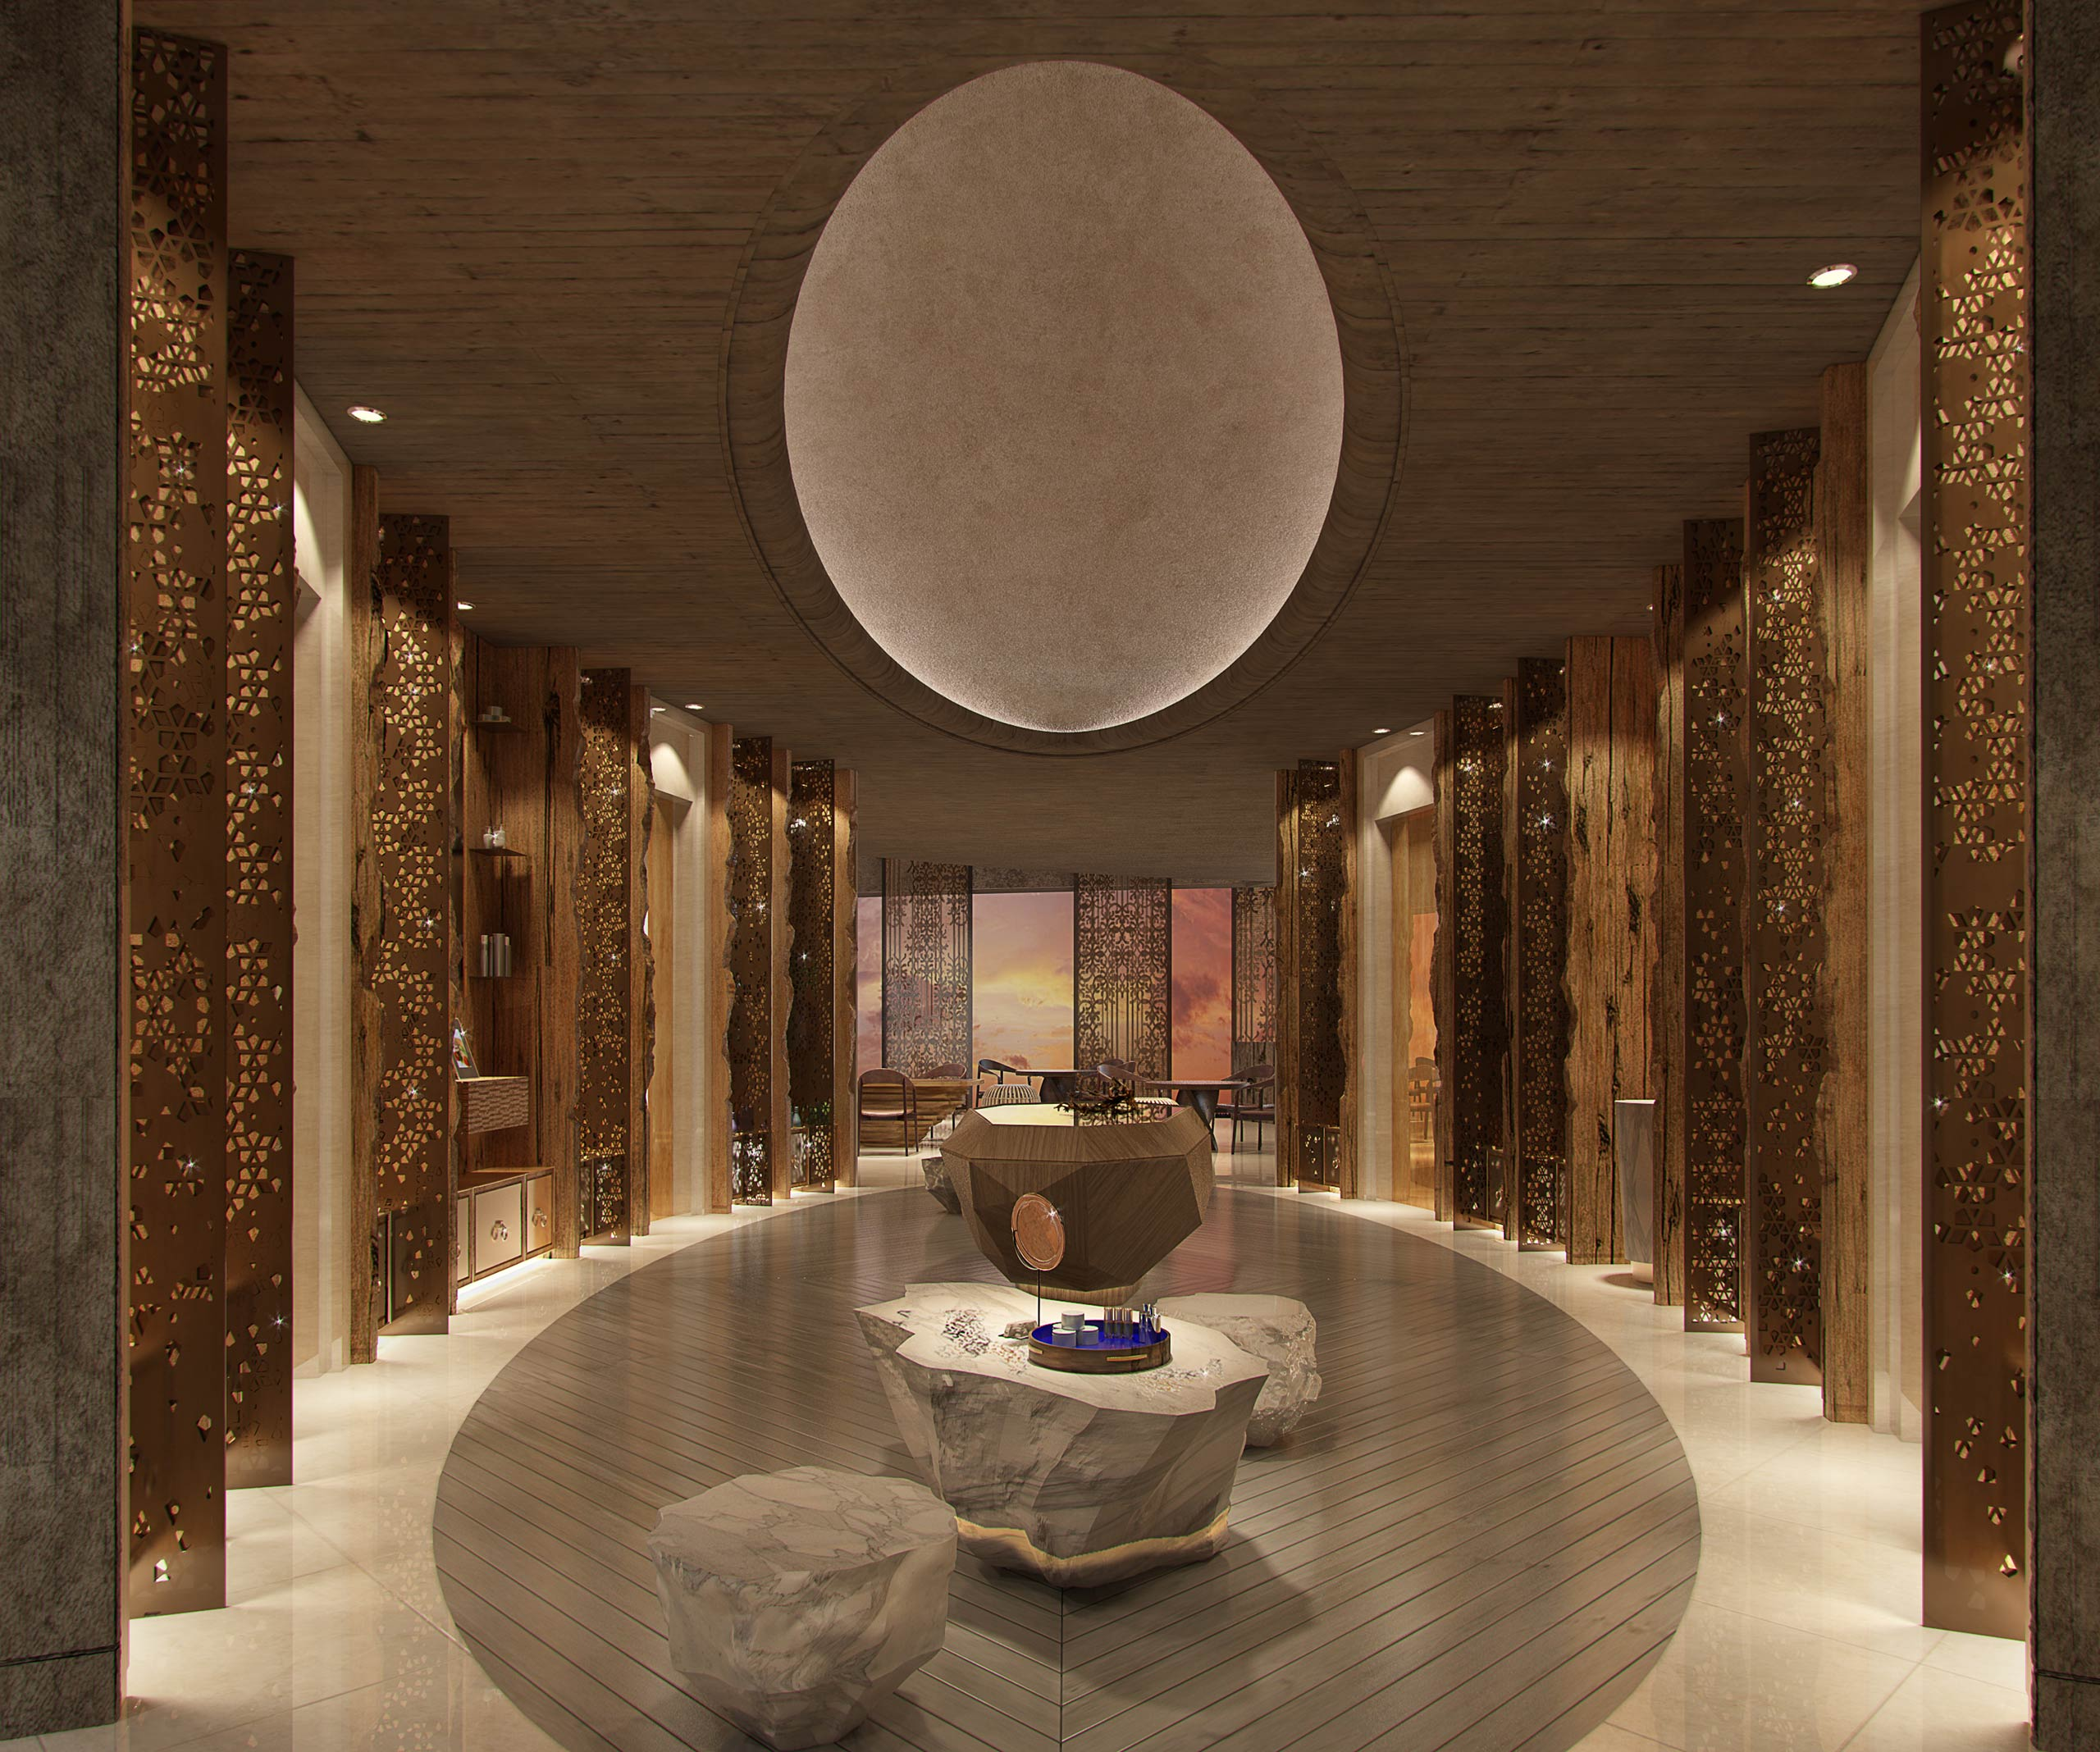 The Yet To Open Six Senses Spa In Mumbai, Will Be Located At World Towers By Lodha And Will Be A Sensual Play Of Materials, Textures And Aromas.